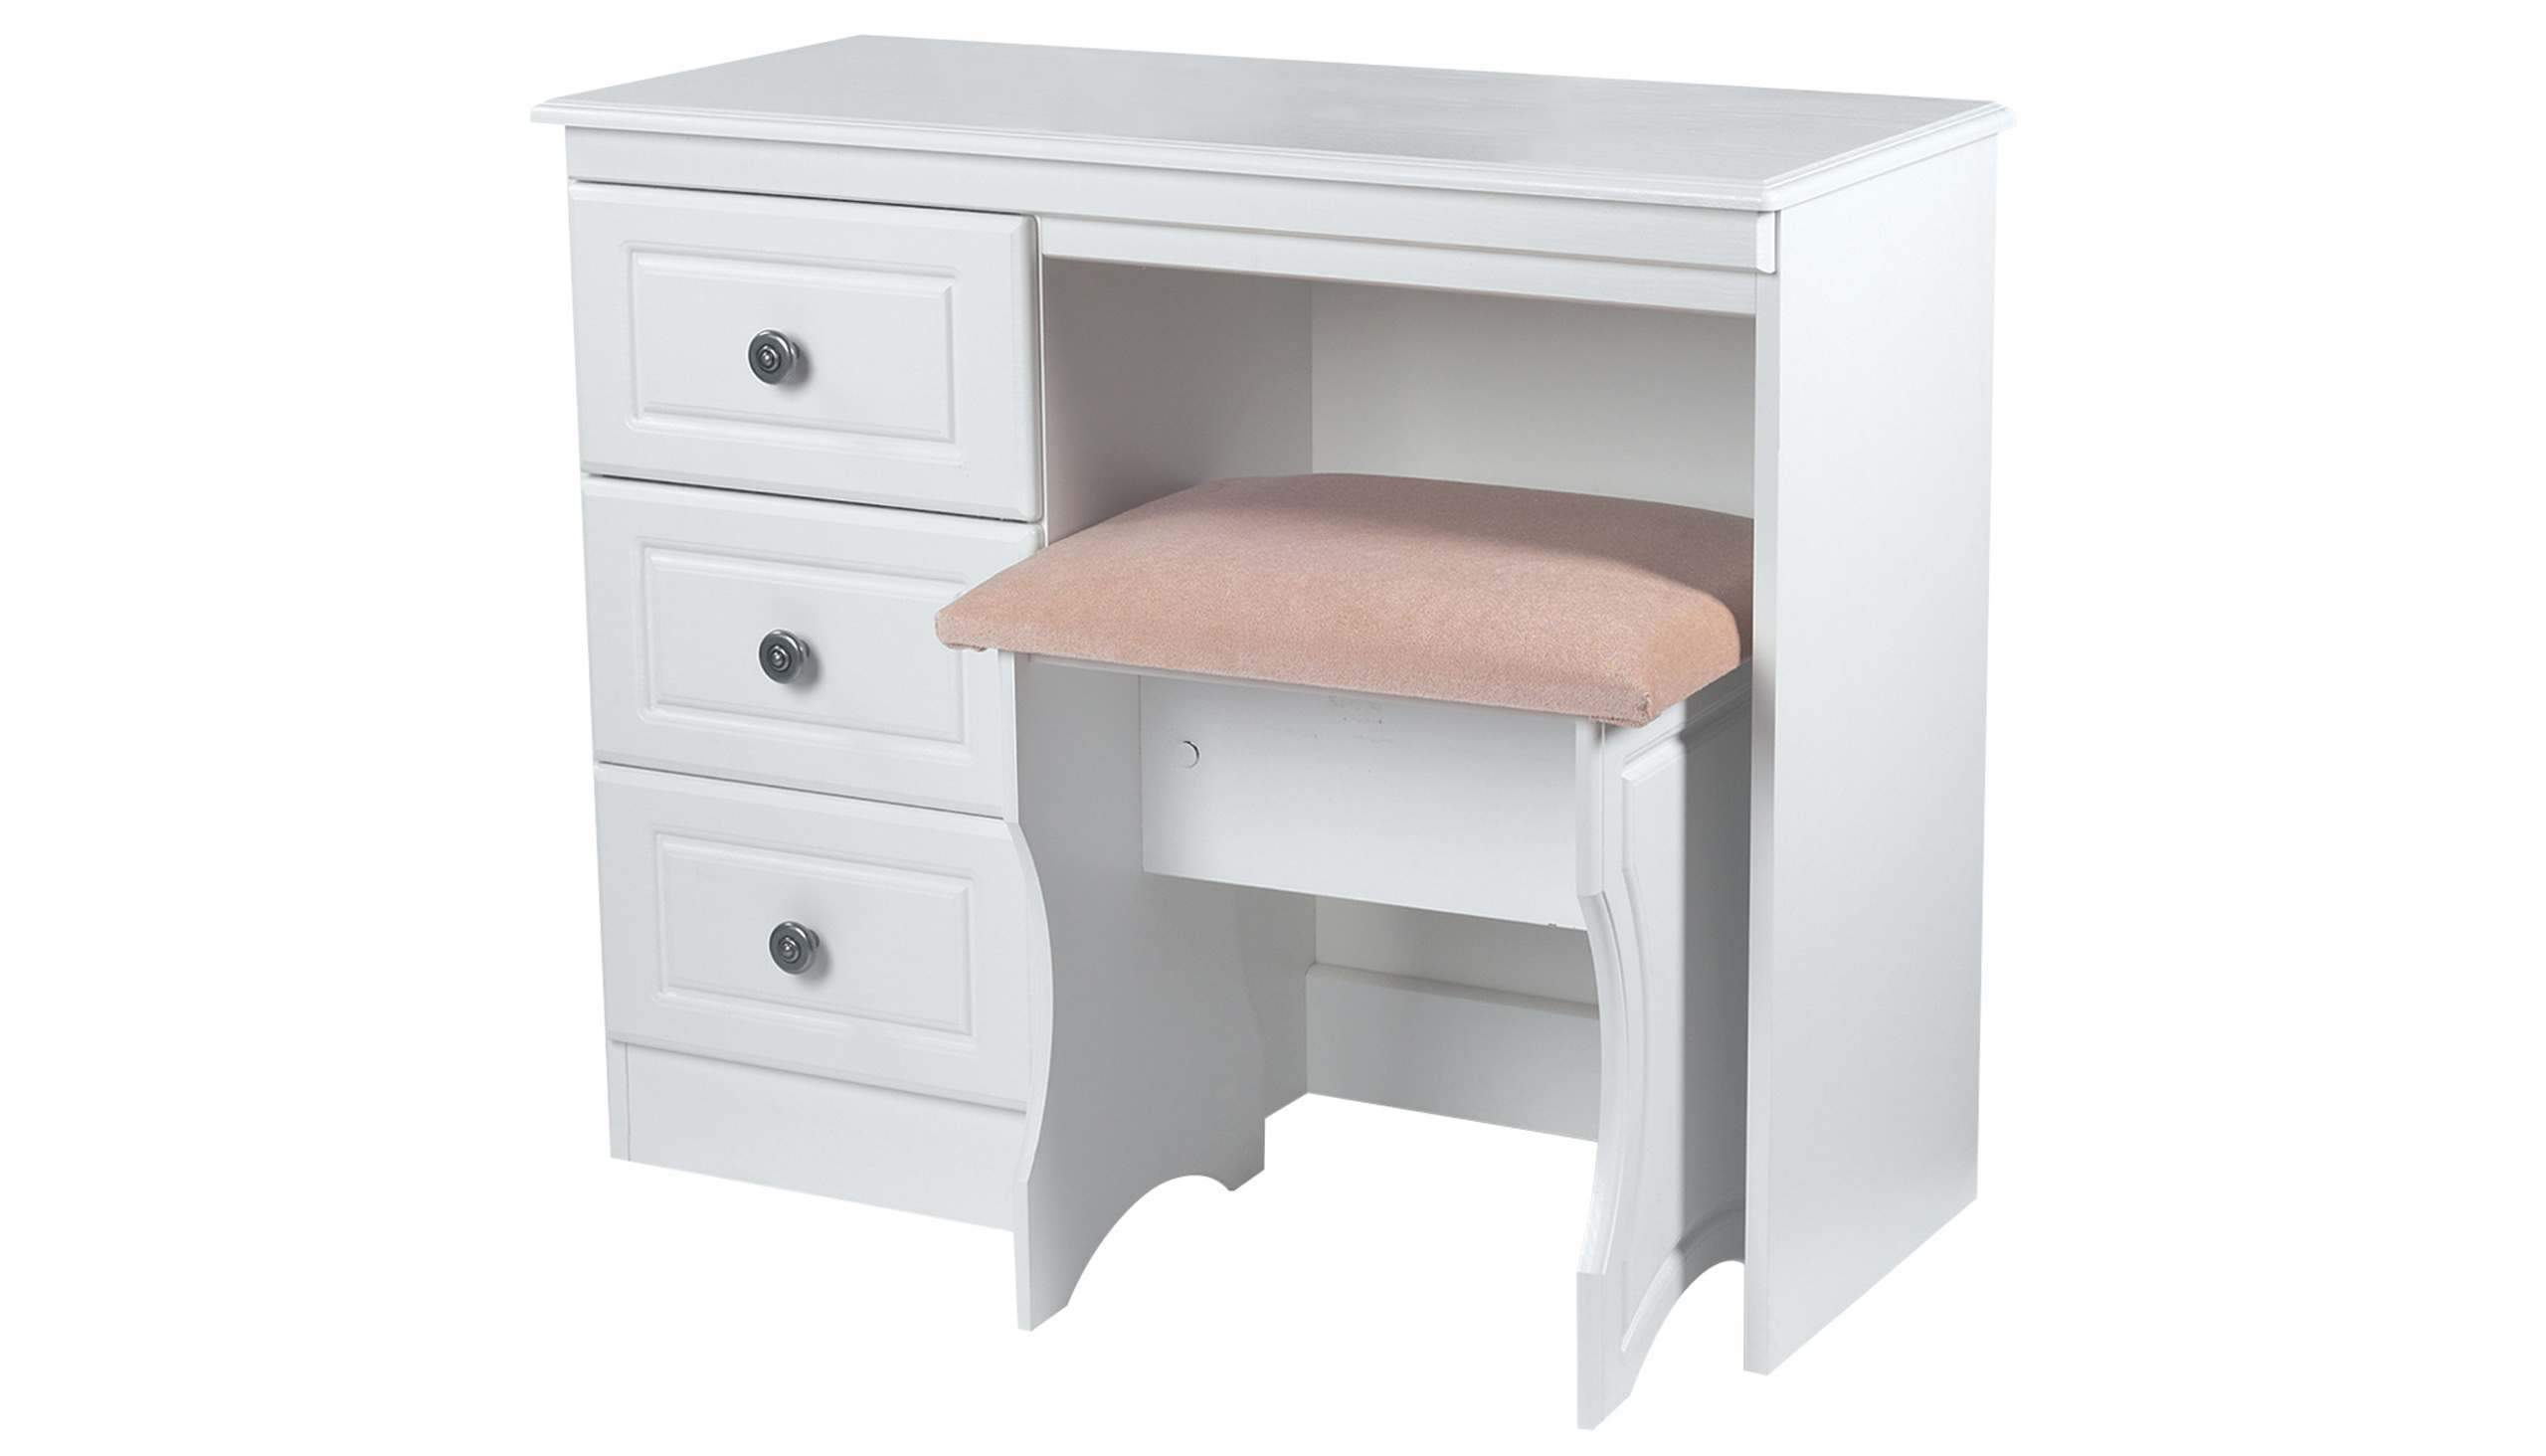 Pembroke 3 drawer vanity unit - AHF Furniture & Carpets